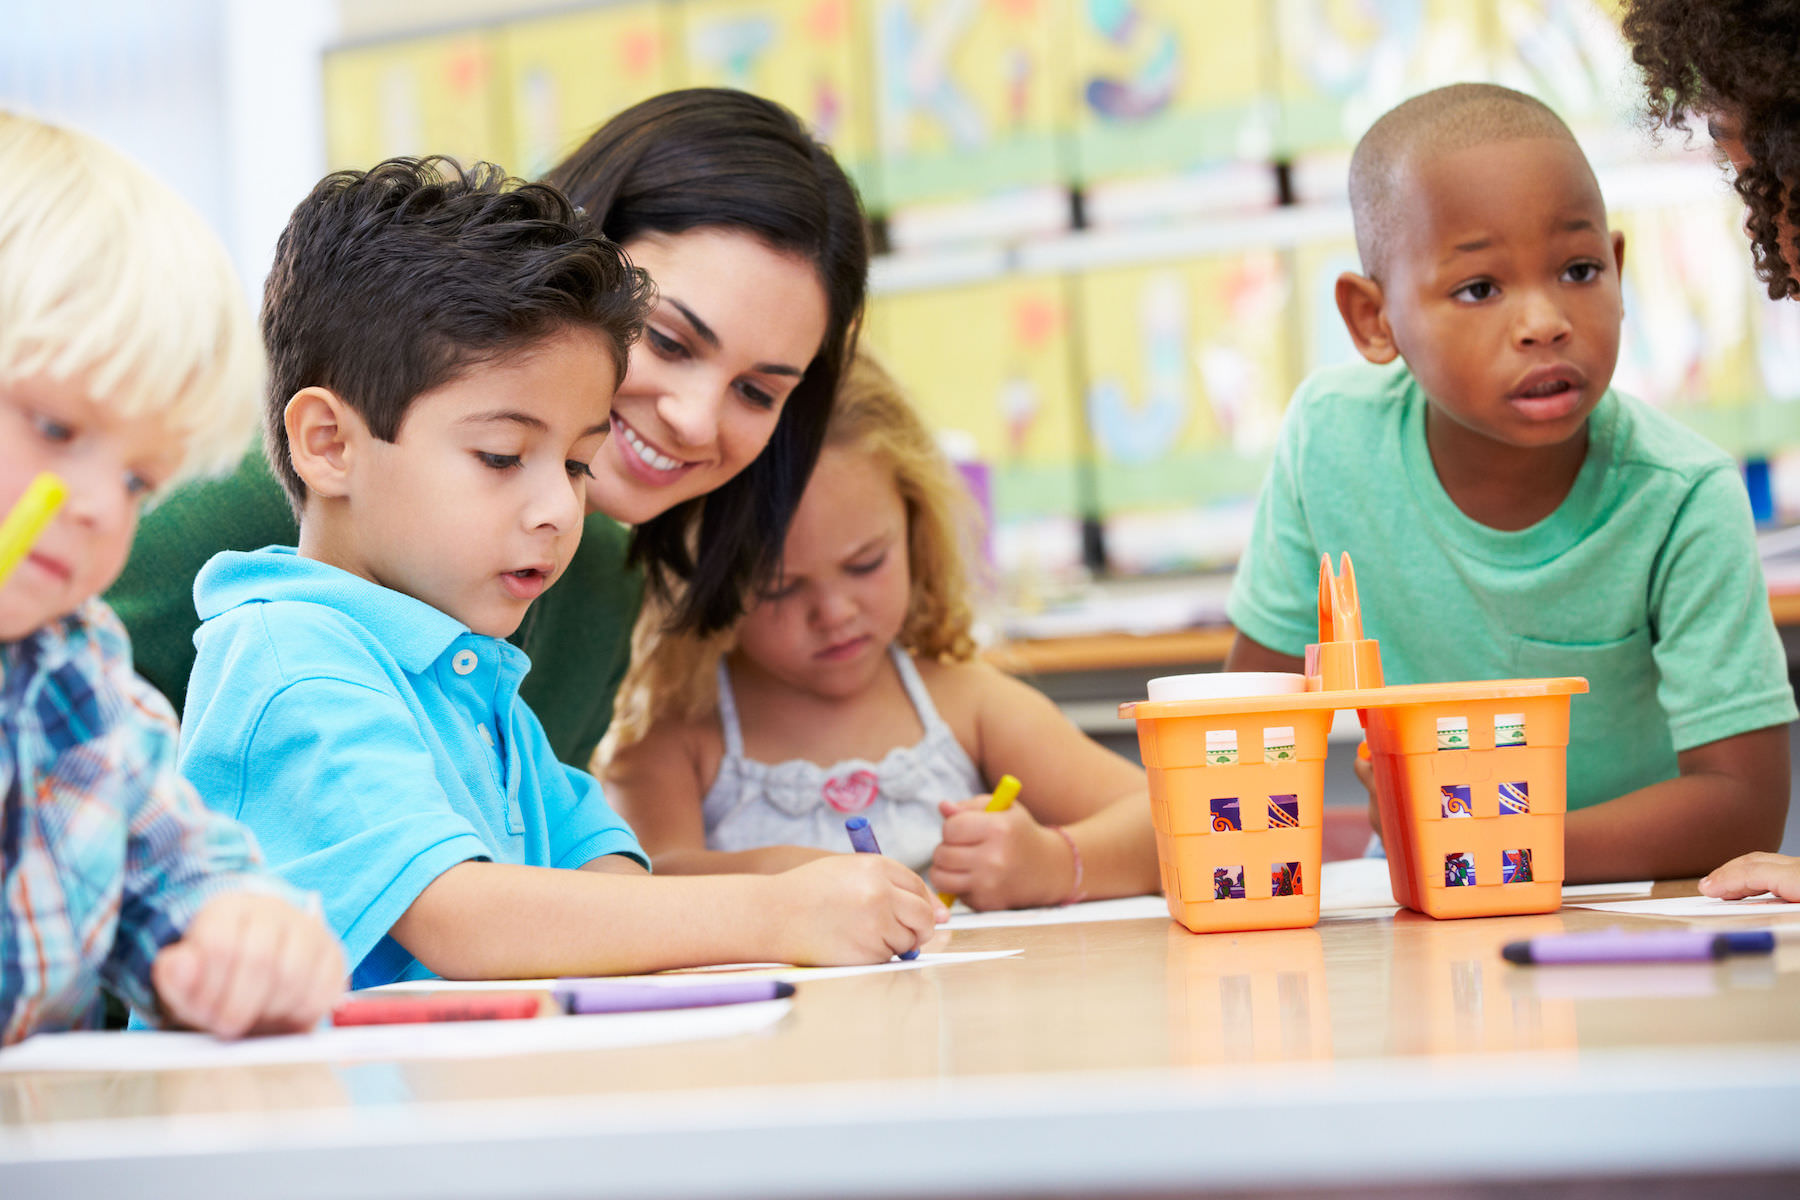 DAY CARE/CHILD CARE INDUSTRY